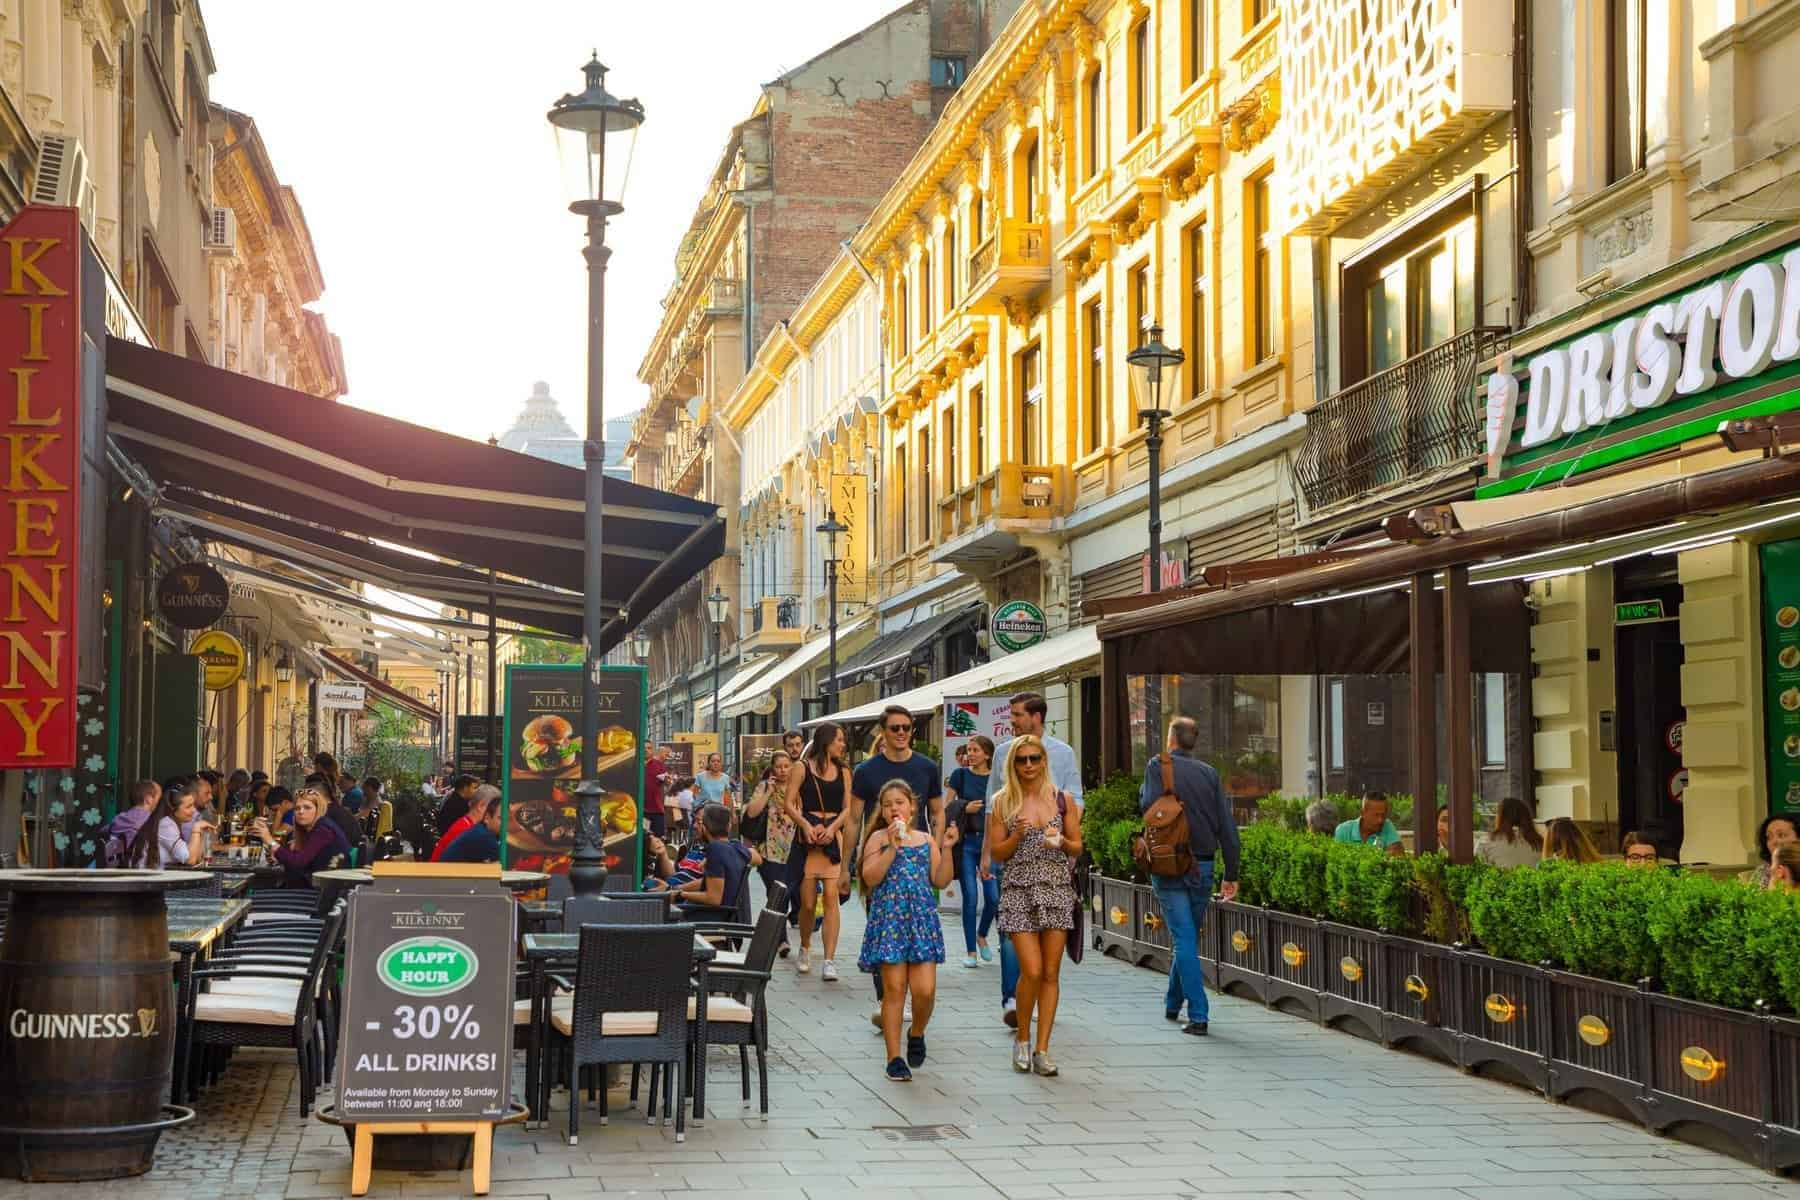 Bucharest, Rumania - 28.04.2018: Tourists in Old Town and Restaurants on Downtown Lipscani Street, one of the most busiest streets of central Bucharest, Rumania